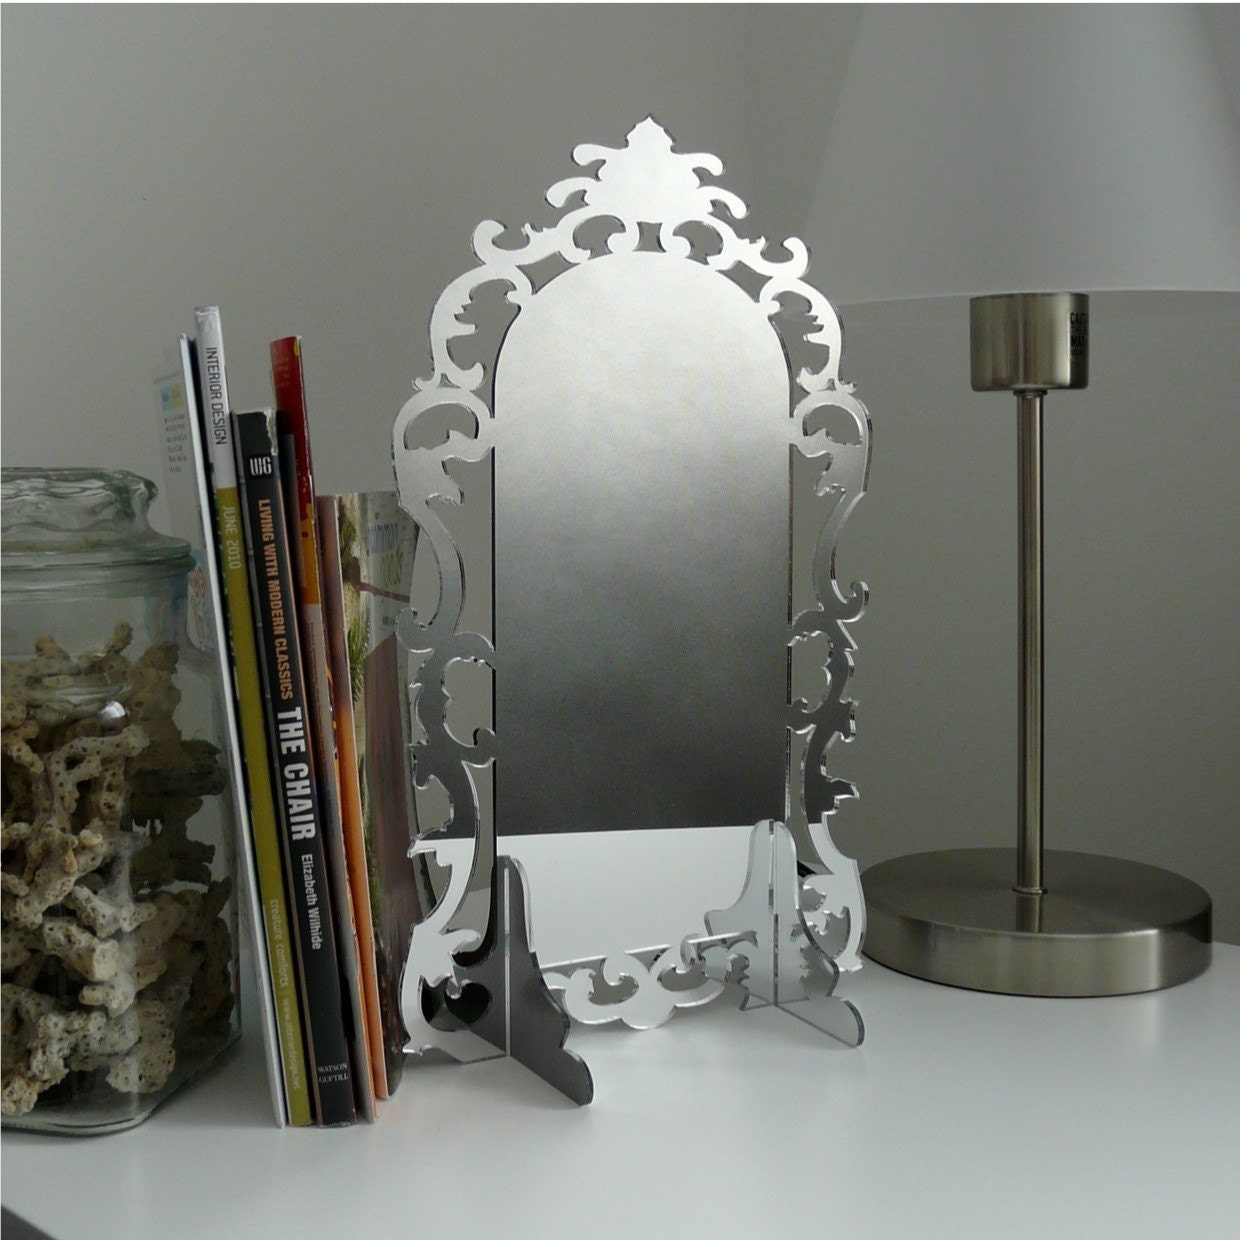 Acrylic mirror modern design rococo style by revisions on etsy for Modern rococo interior design